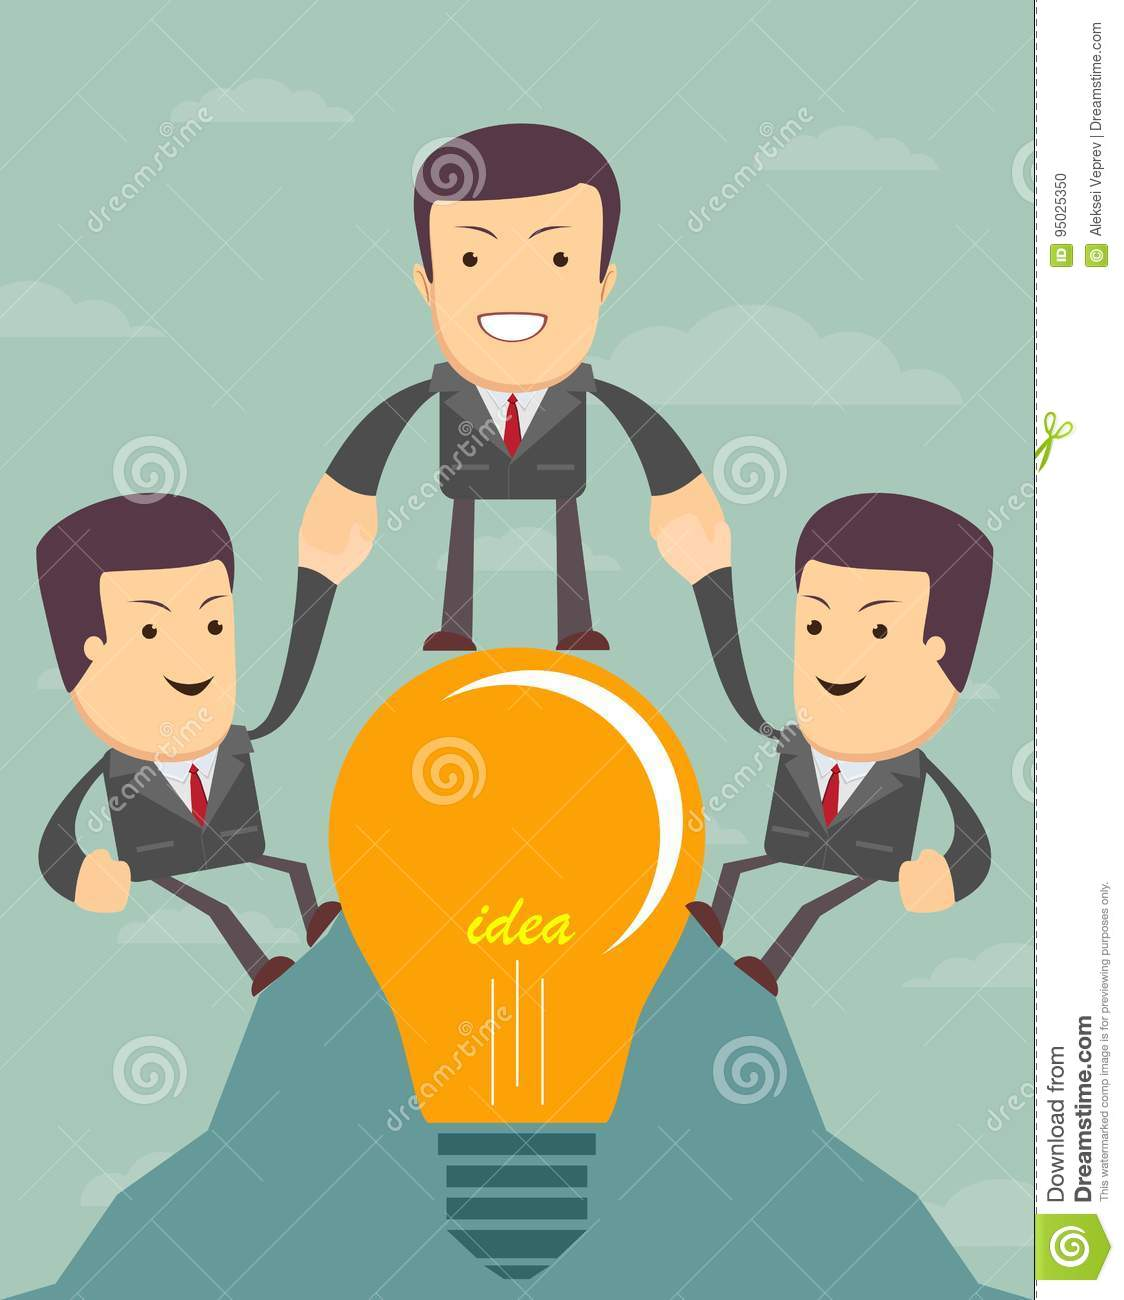 People Helping Each Other: Businessmen Cartoons, Illustrations & Vector Stock Images